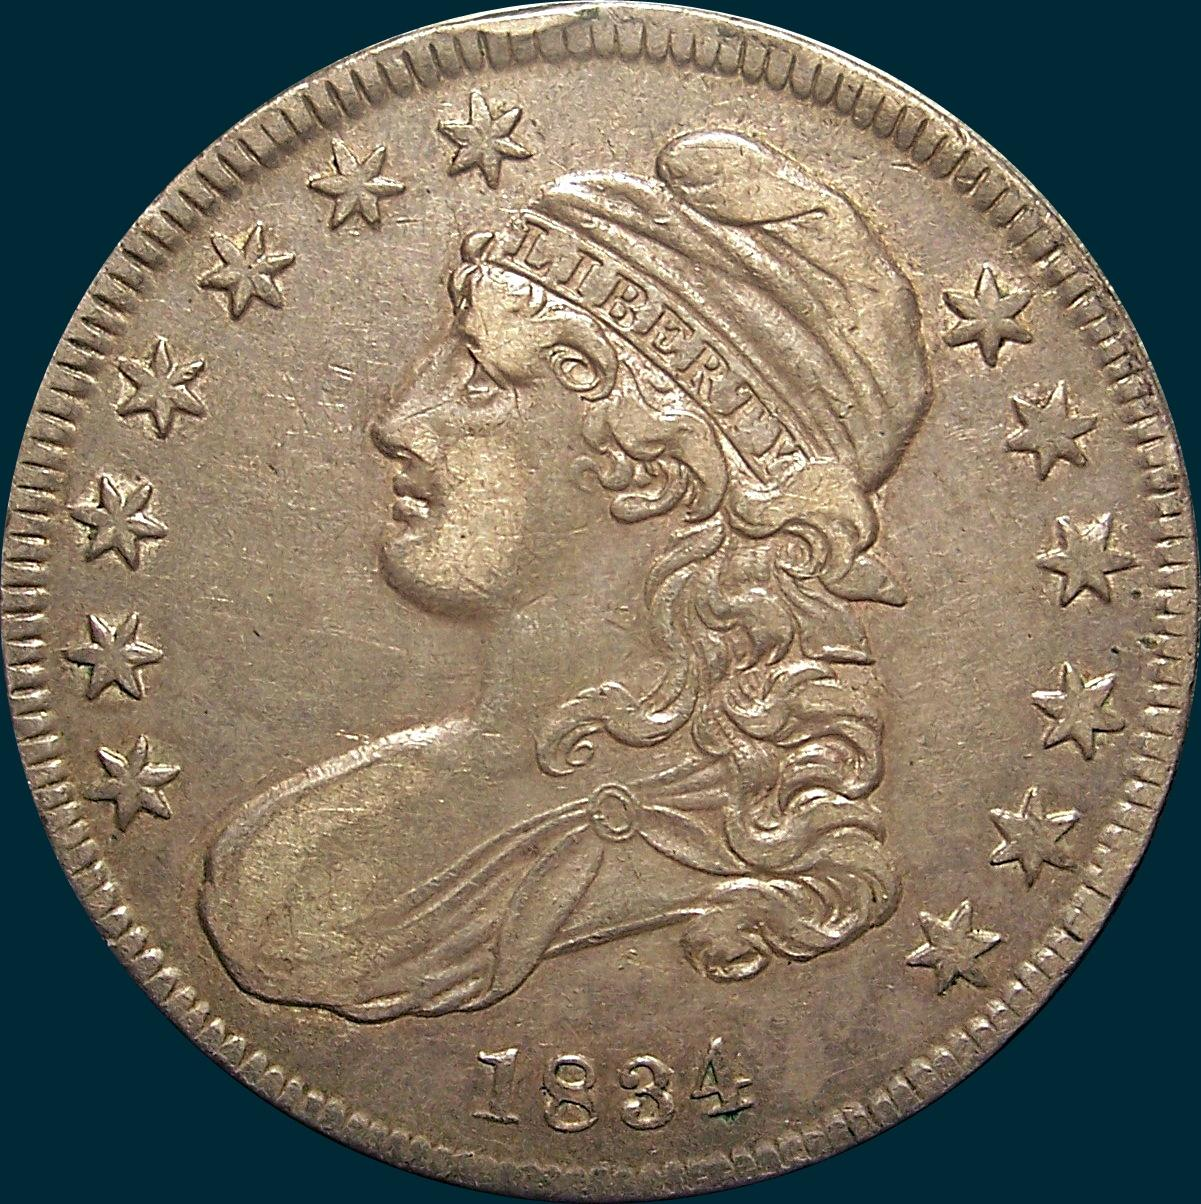 1834, O-116, Small Date, Small Letters, Capped Bust, Half Dollar